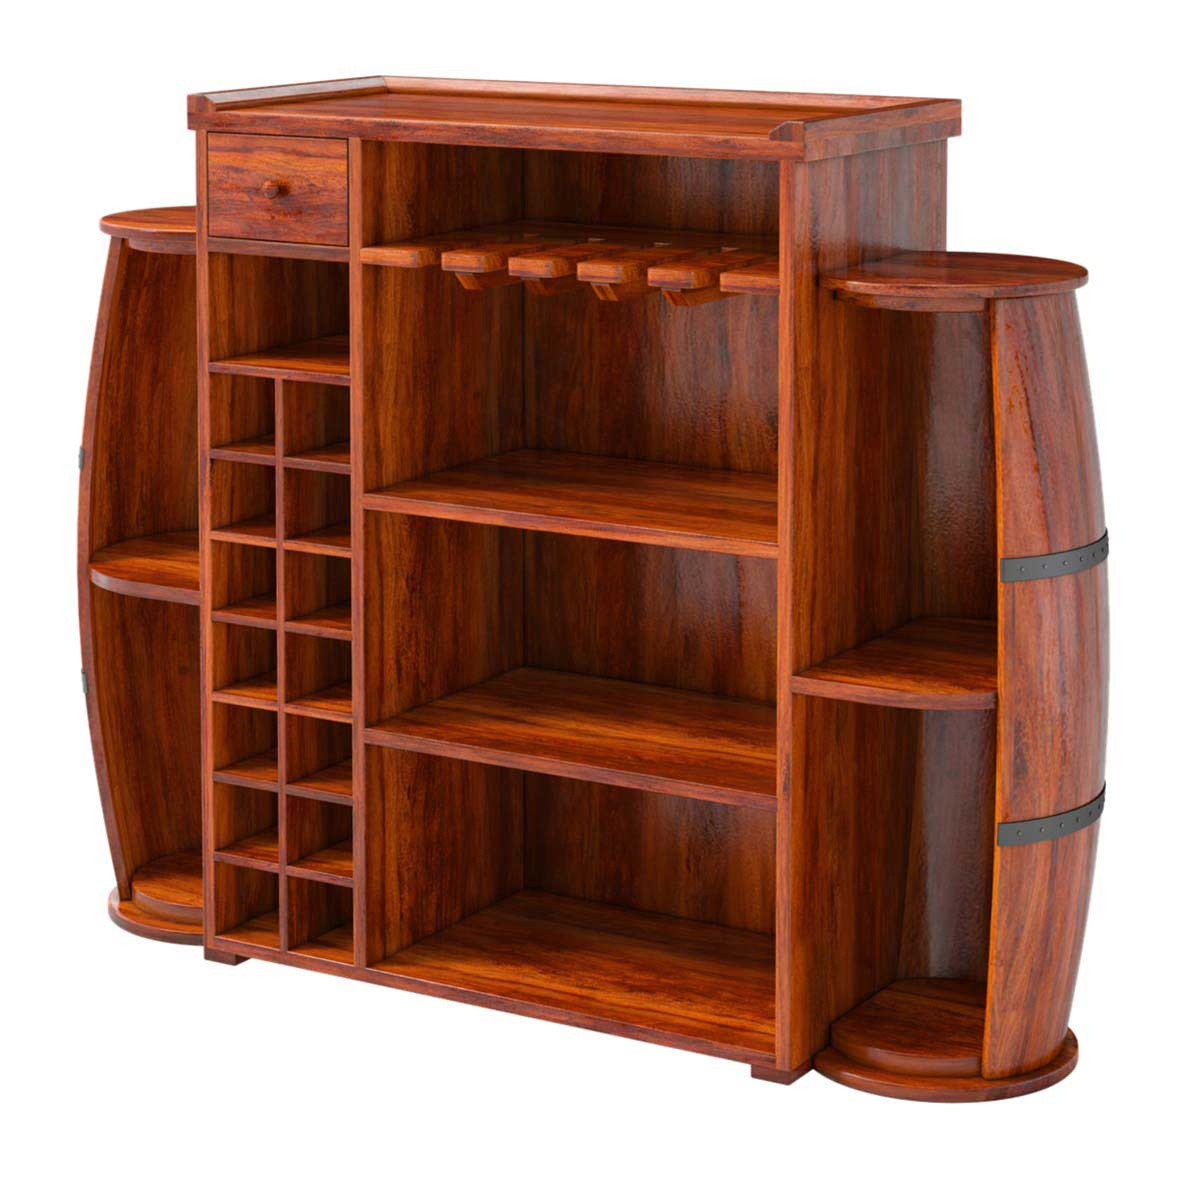 Harrod handcrafted rustic solid wood barrel design home bar cabinet - Solid wood house plans ...